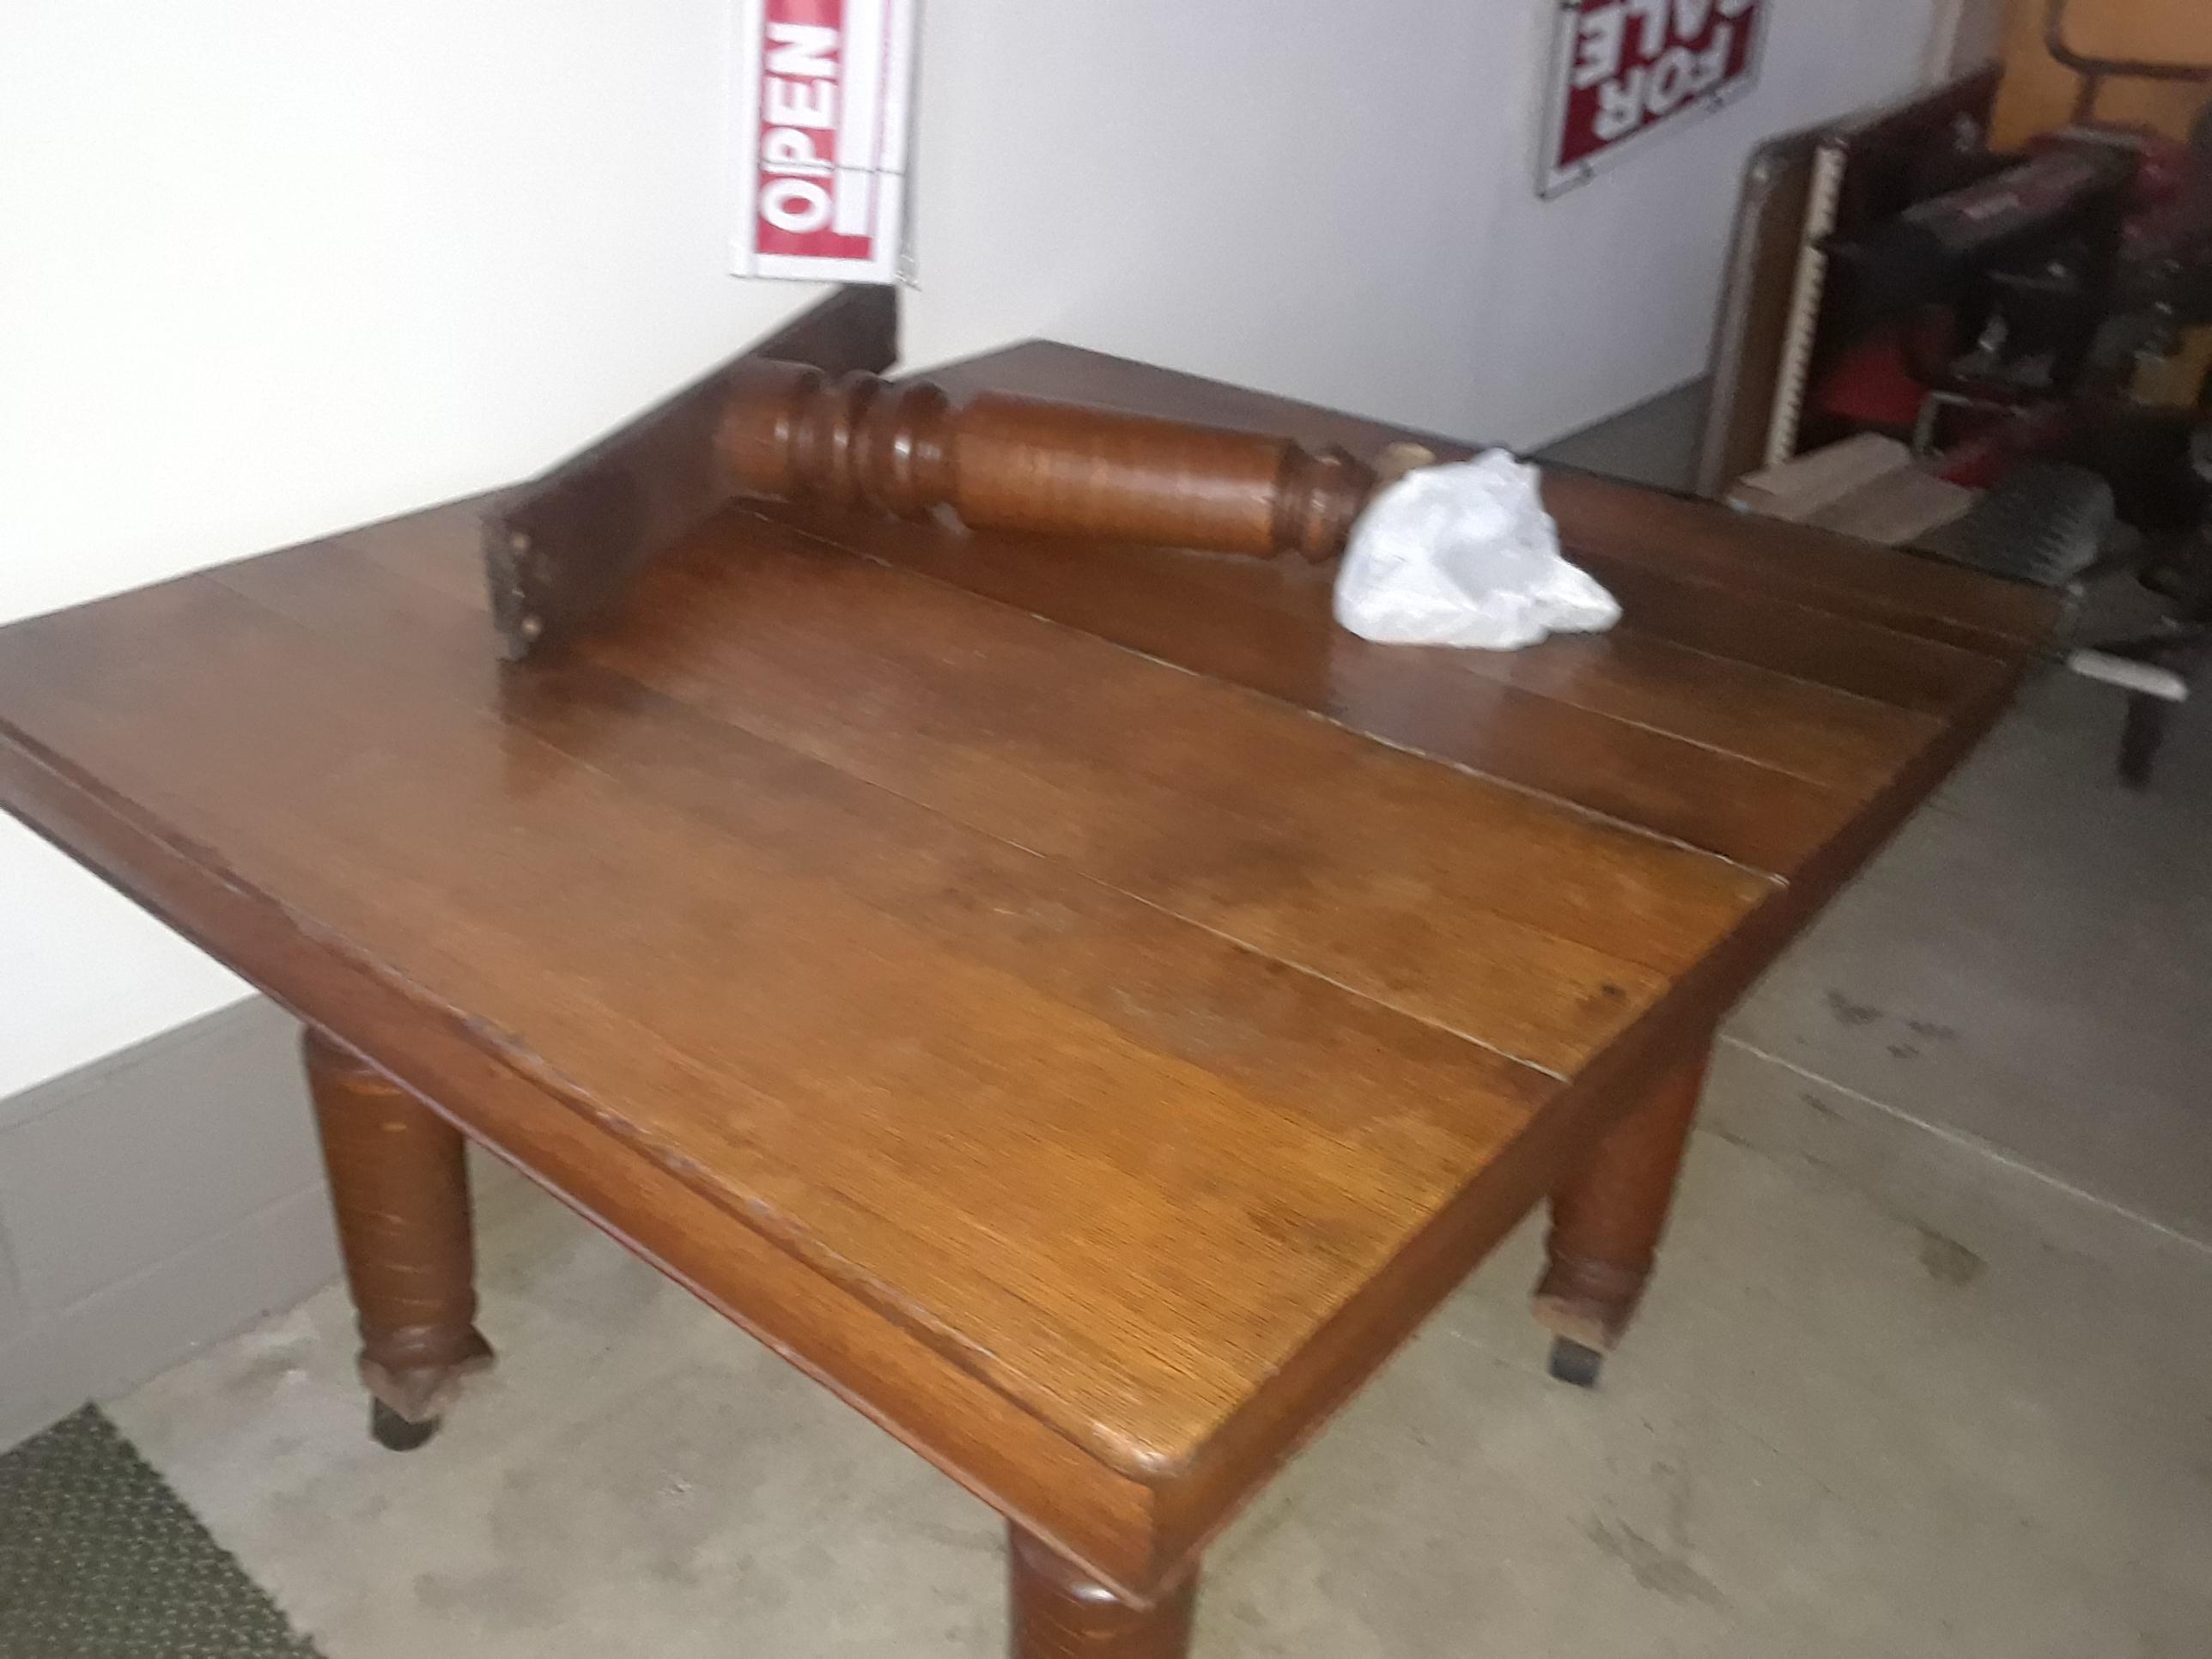 Antique Robbins Tiger Oak 5 Legged Dining Table With 6 Storing Leaves Antique Appraisal Instappraisal